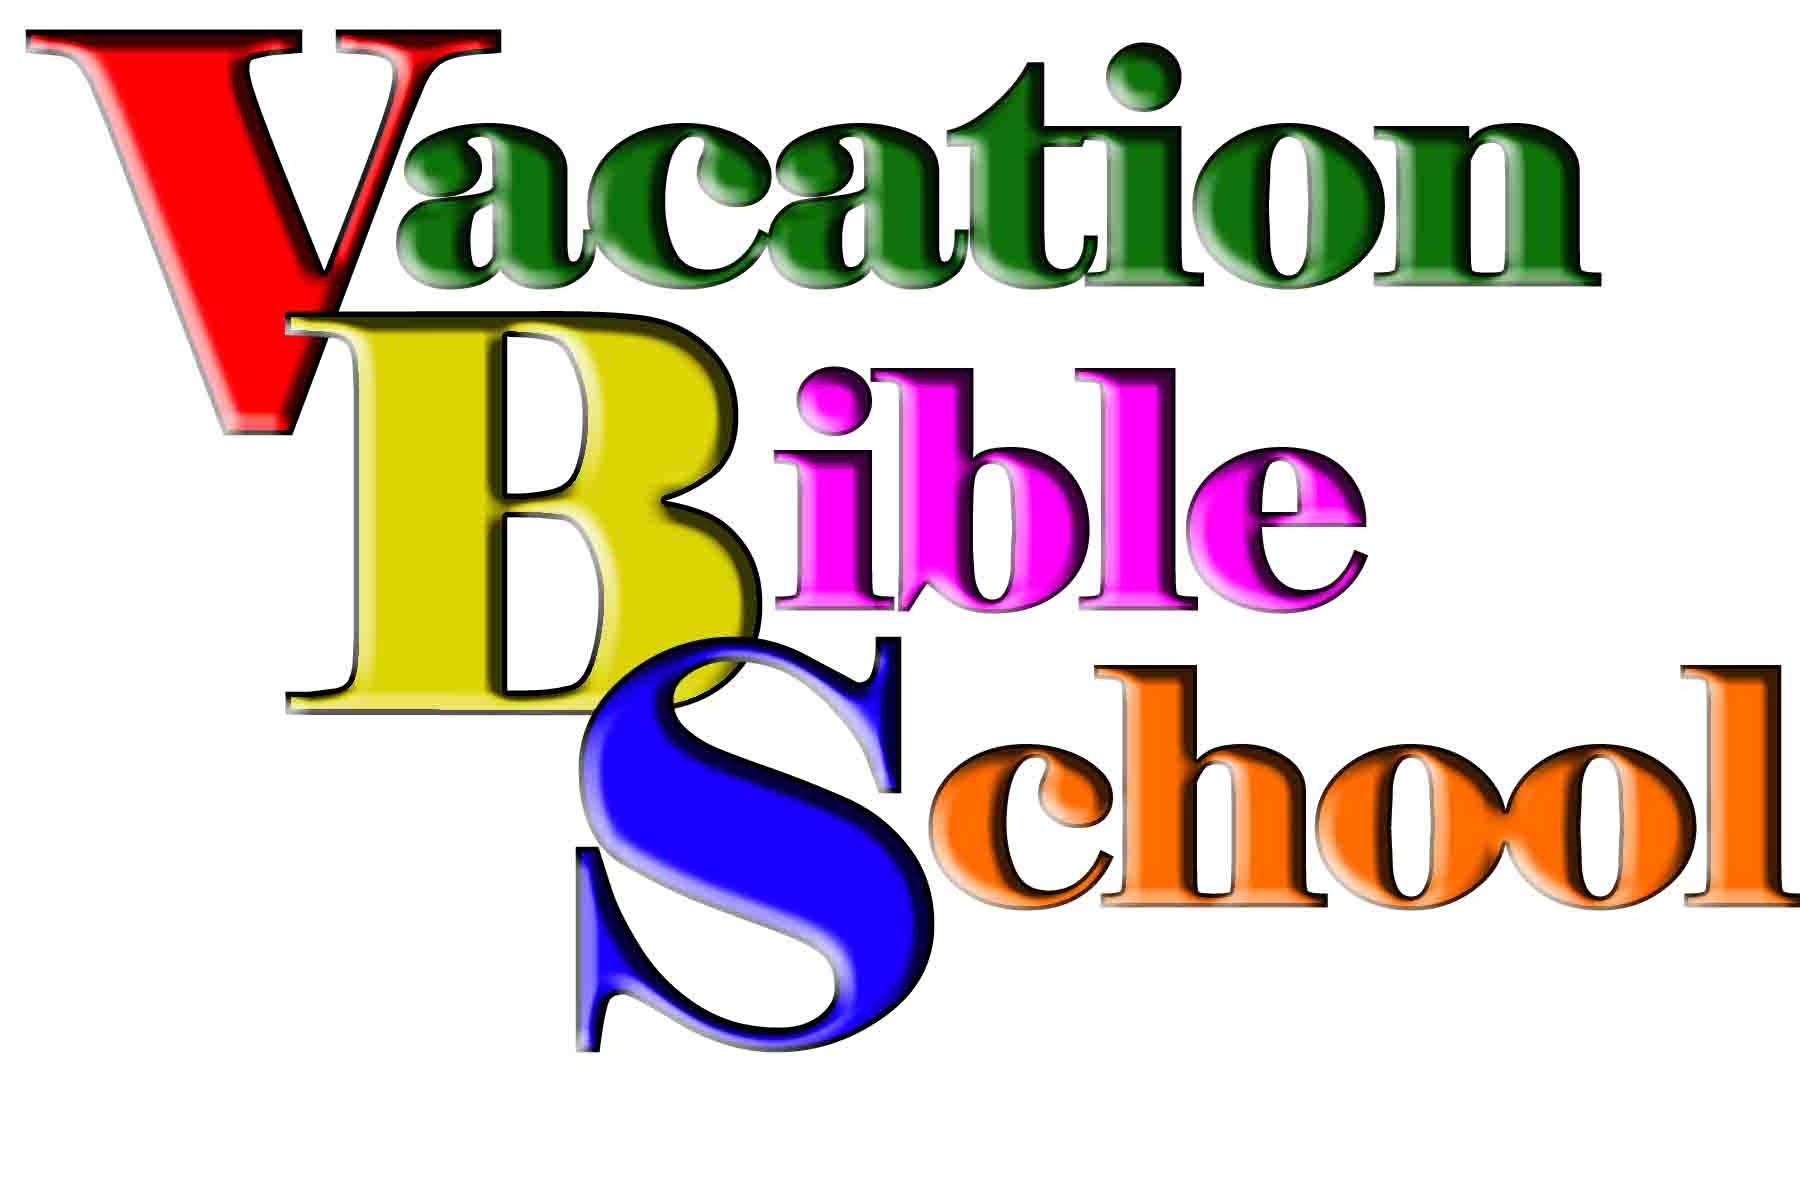 Clipart for vacation bible school graphic black and white Vacation Bible School Clip Art - ClipArt Best graphic black and white